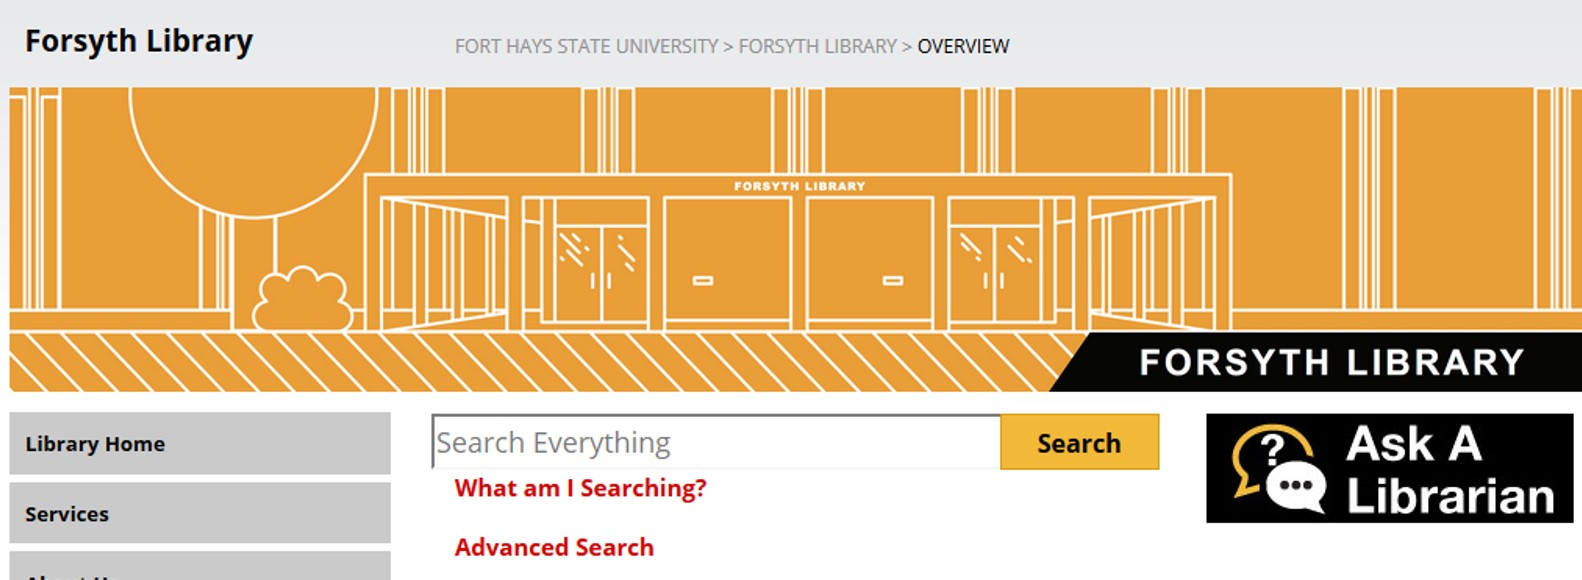 Forsyth Library search page